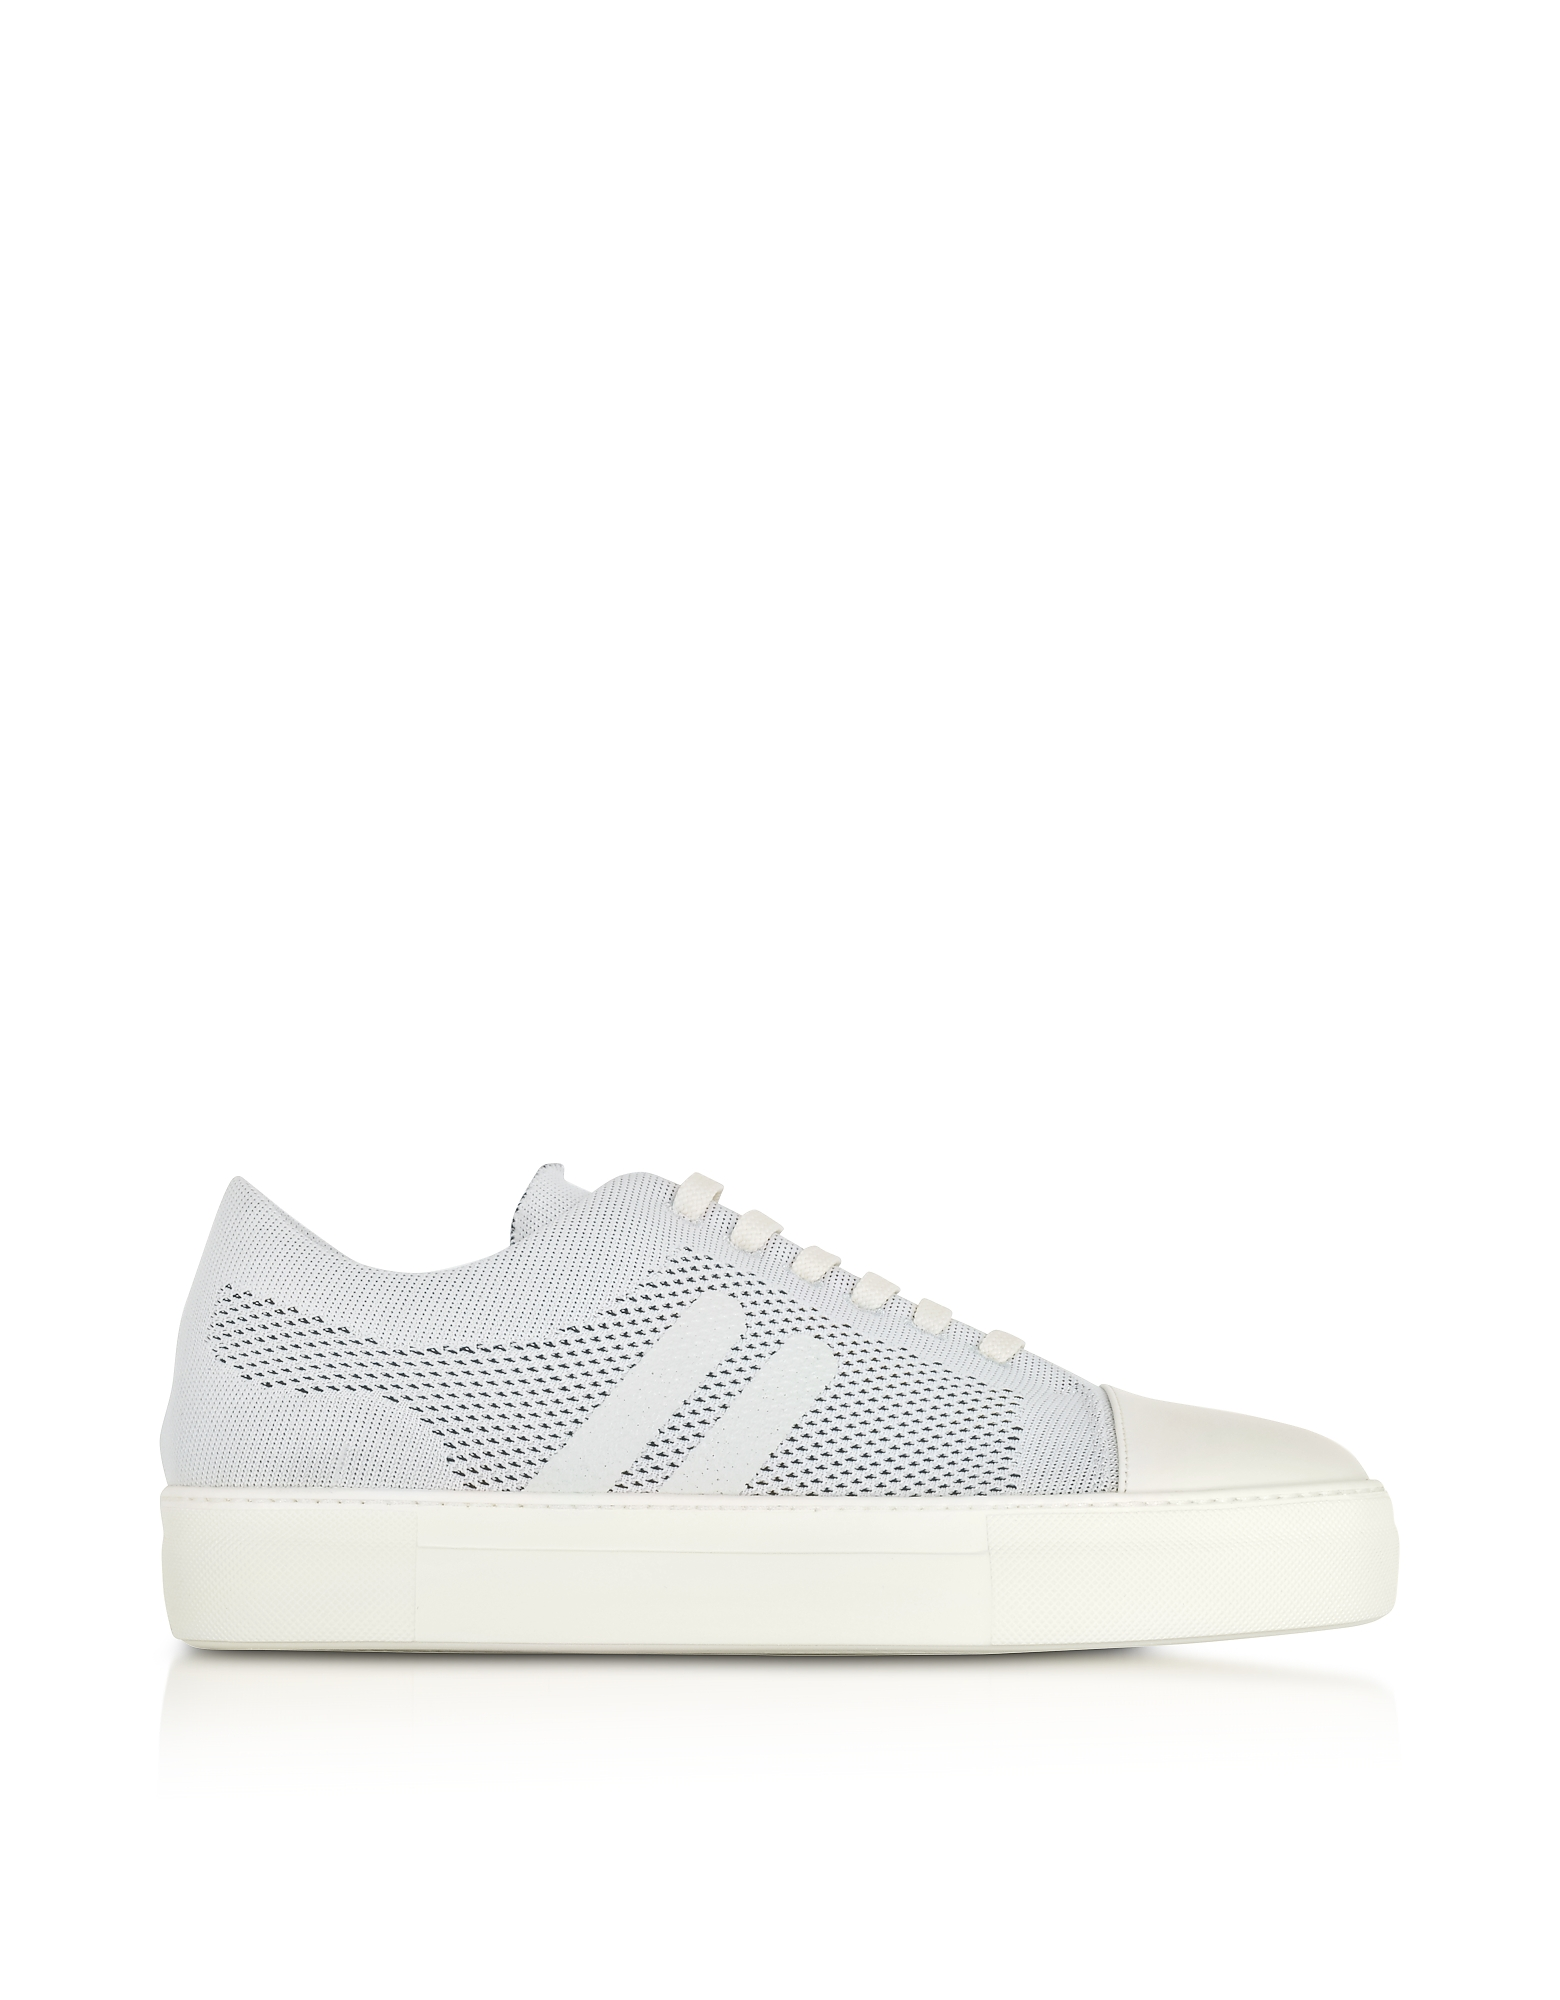 Neil Barrett Shoes, Off White Perforated Fabric and Nappa Leather Skateboard Sneakers